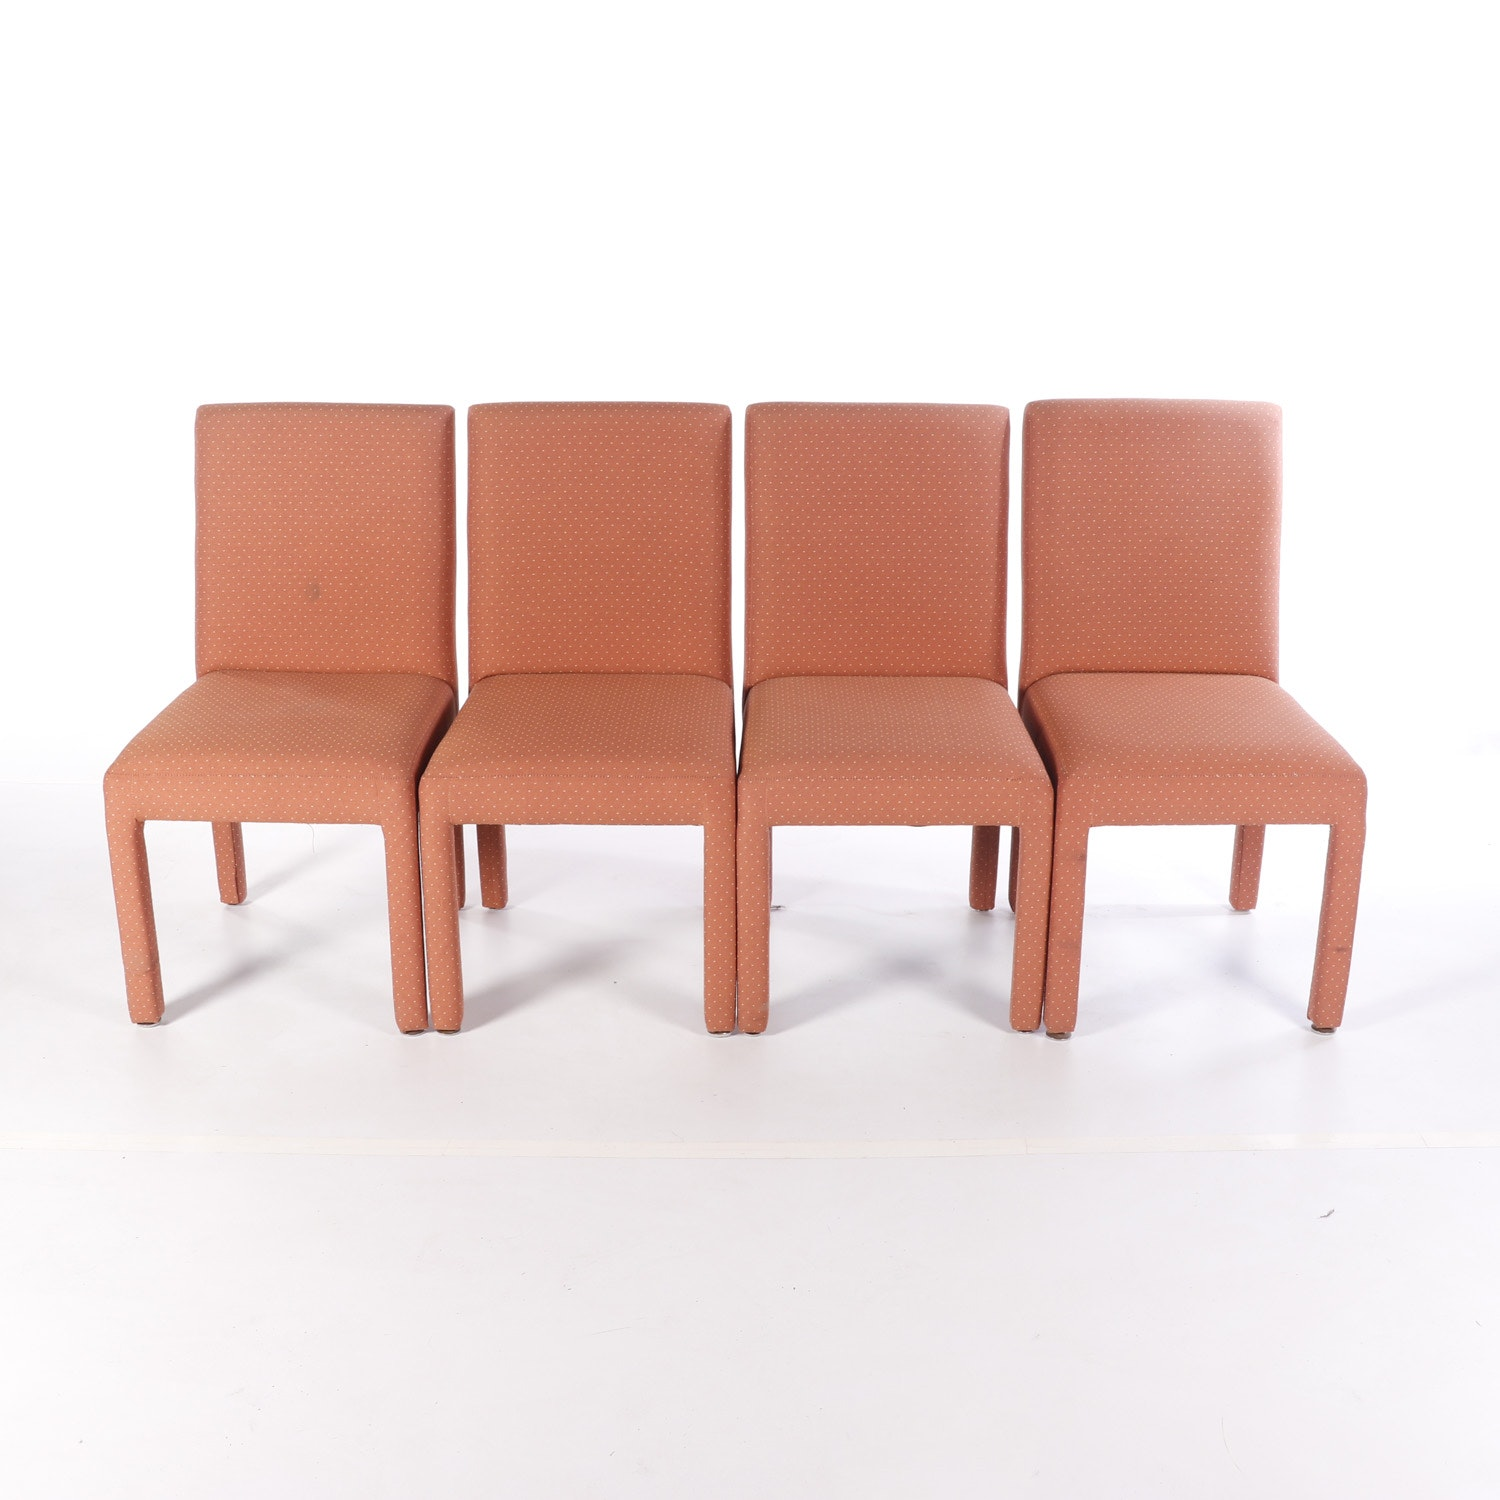 Design Institute of America Upholstered Chairs